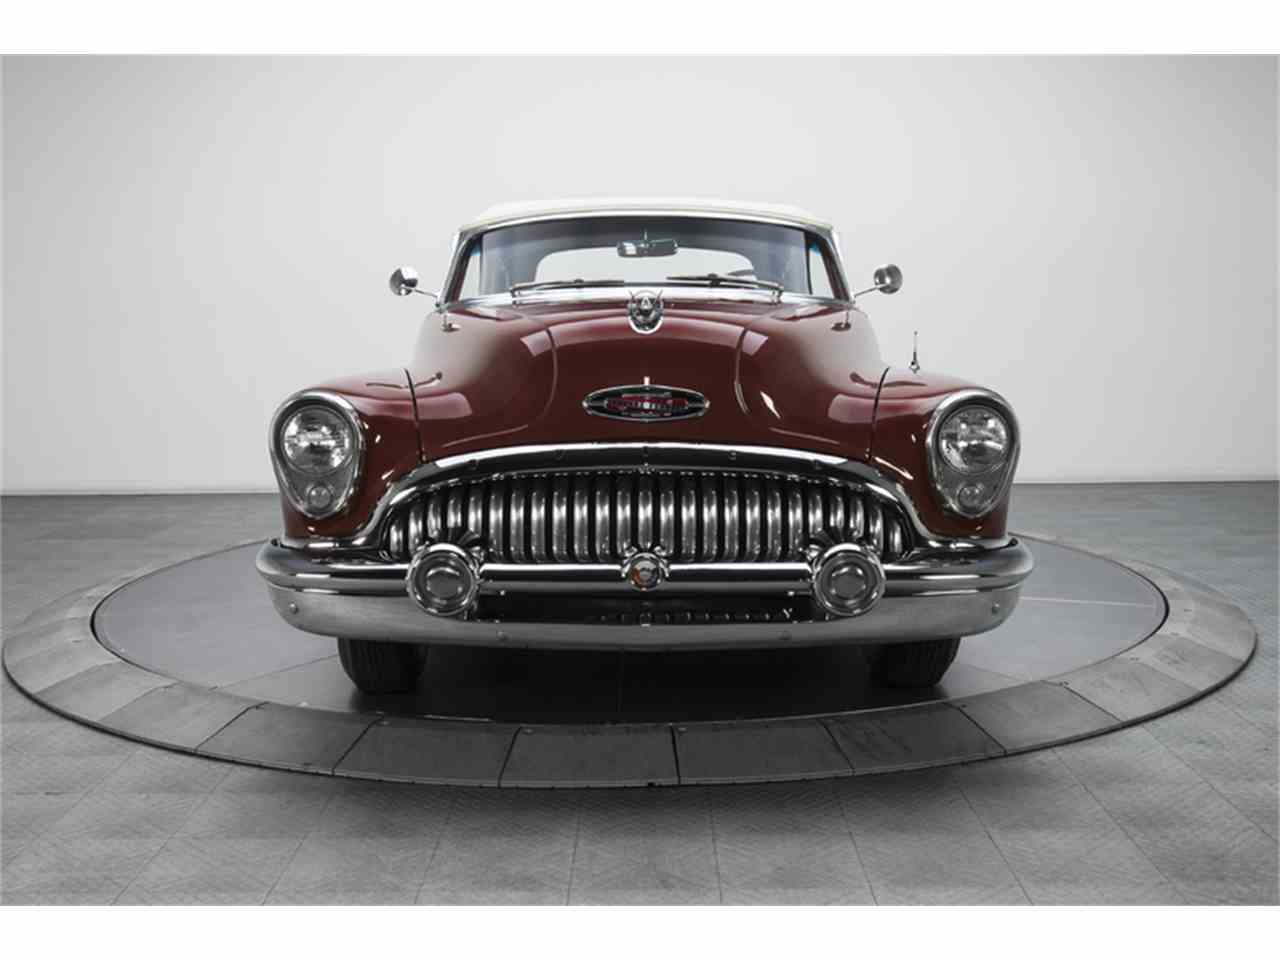 Large Picture of 1953 Buick Skylark located in North Carolina - $159,900.00 - GU8J